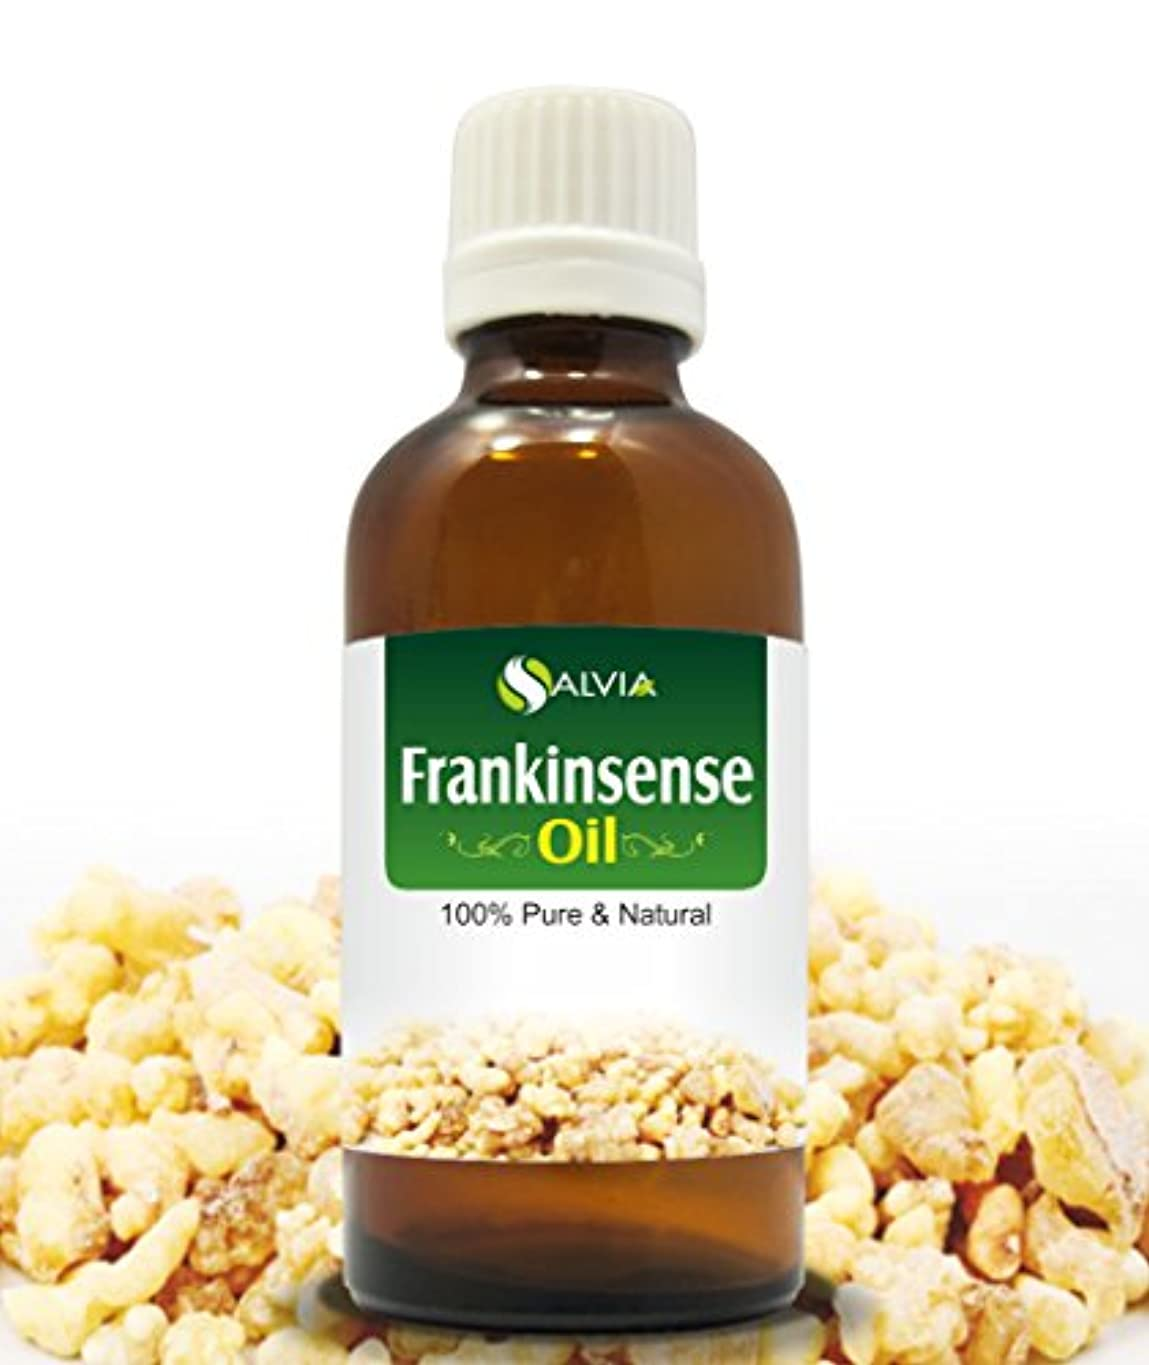 出身地ジムサッカーFRANKINCENSE OIL 100% NATURAL PURE UNDILUTED UNCUT ESSENTIAL OILS 30ML by SALVIA